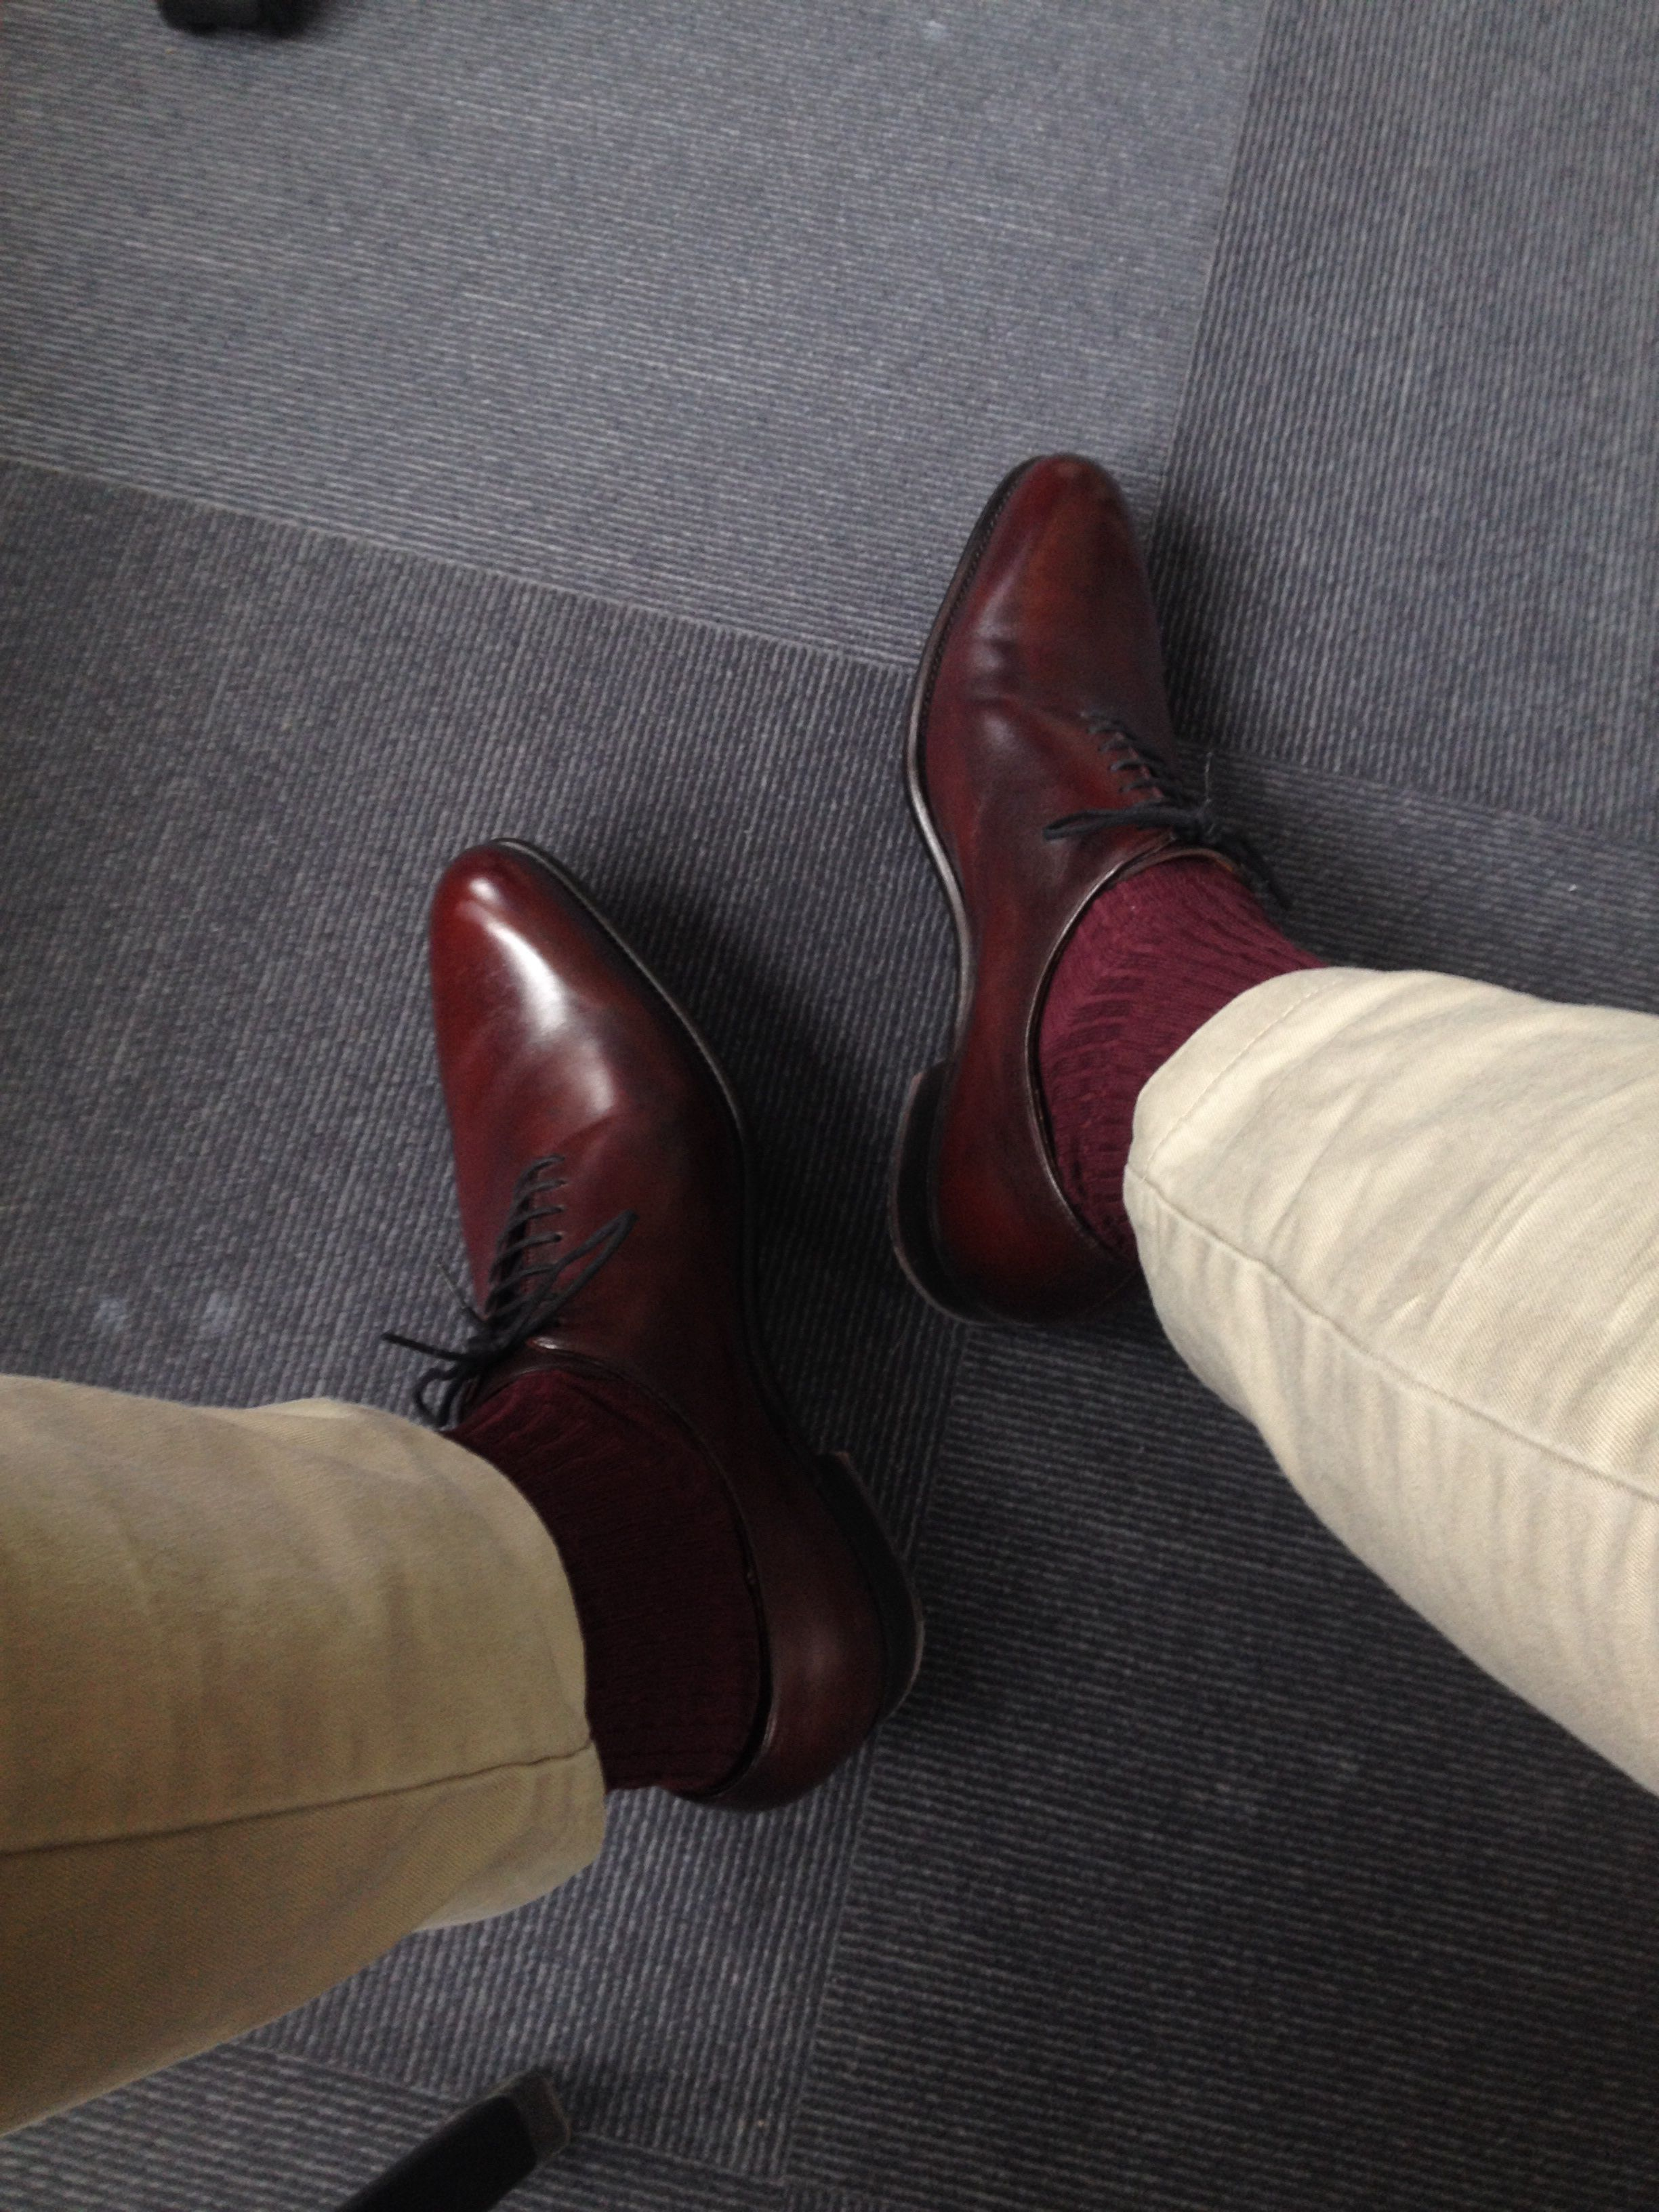 MrBike's photos in Rock Your Socks- show your sock, shoe & pant combos